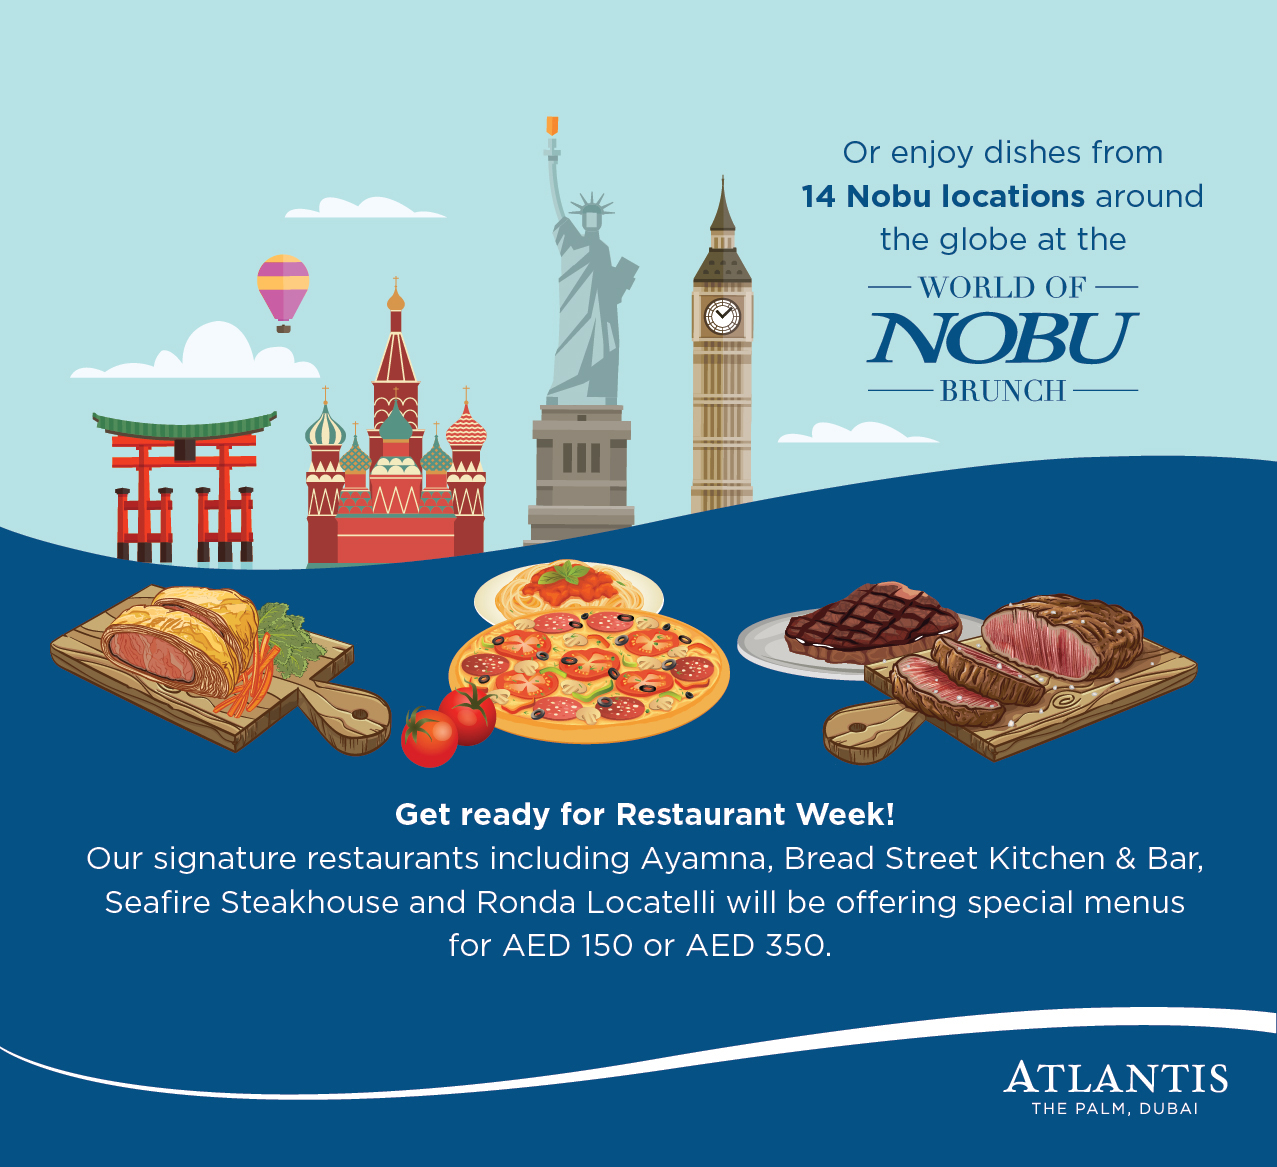 culinary-month-chef-nobu-atlantis-restaurant-week-in-dubai